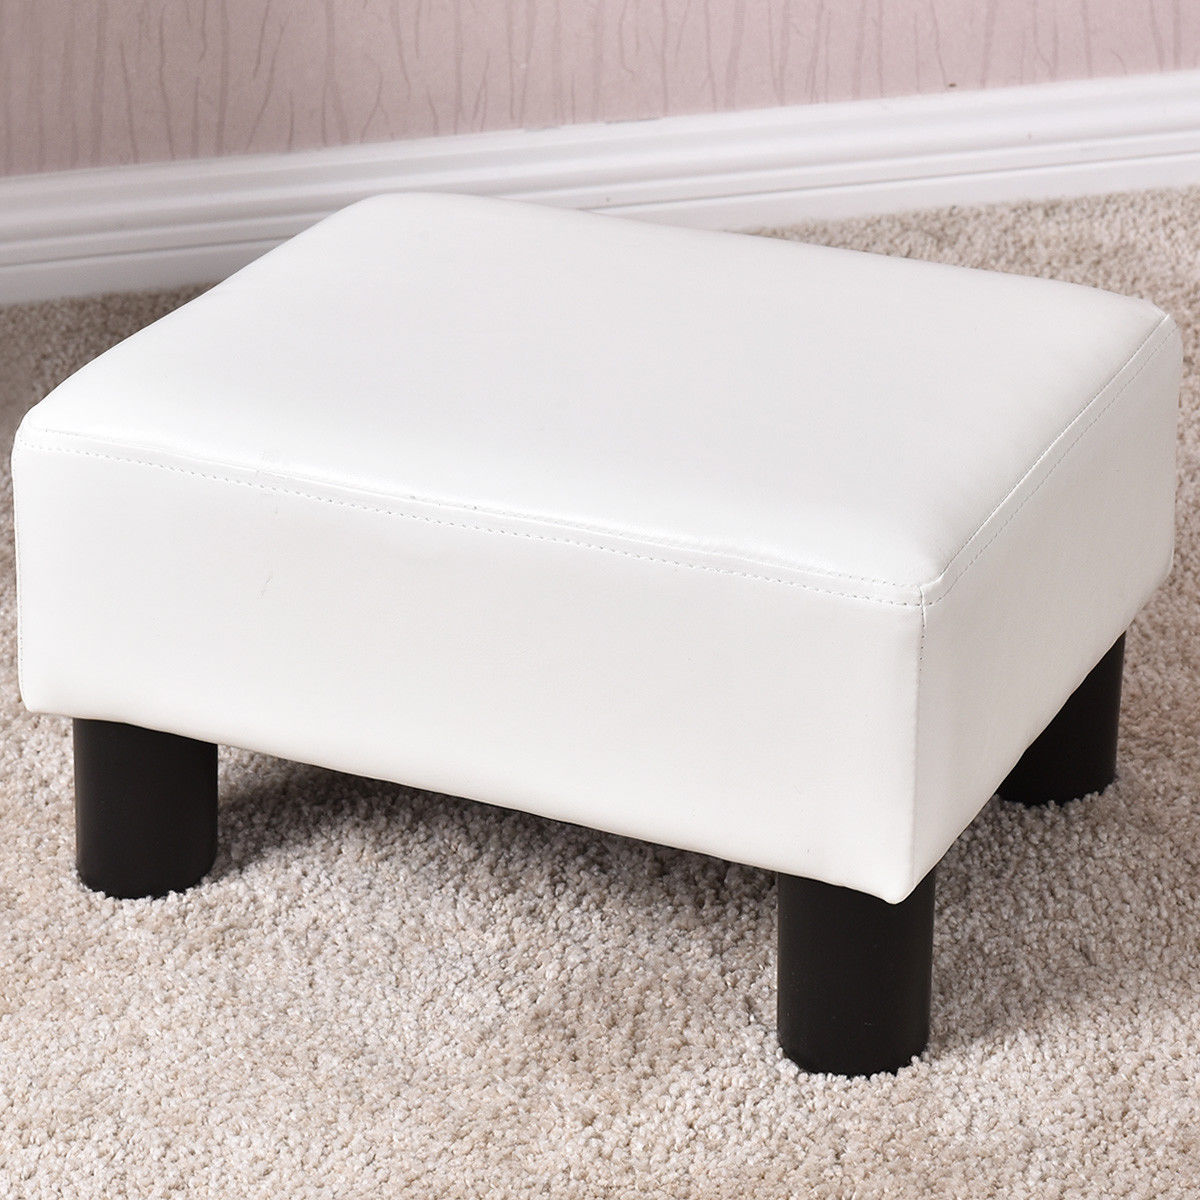 Goplus Small Ottoman Footrest PU Leather Footstool Rectangular Seat Stool White by Goplus